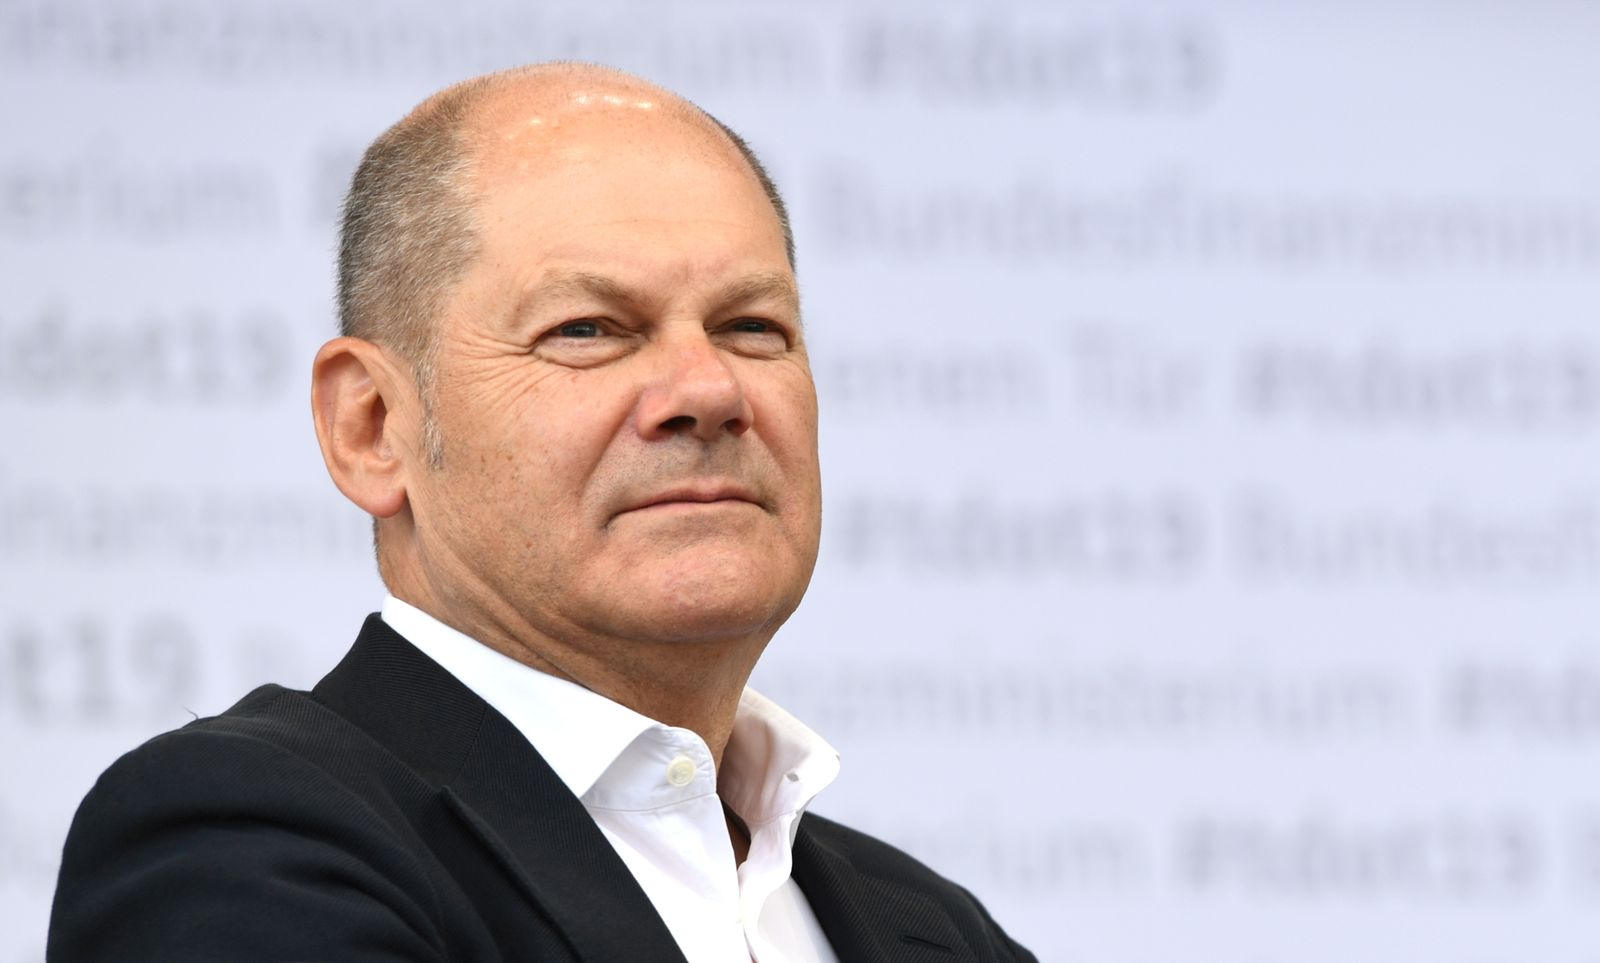 German Vice Chancellor and Finance Minister Olaf Scholz speaks at his ministry in Berlin